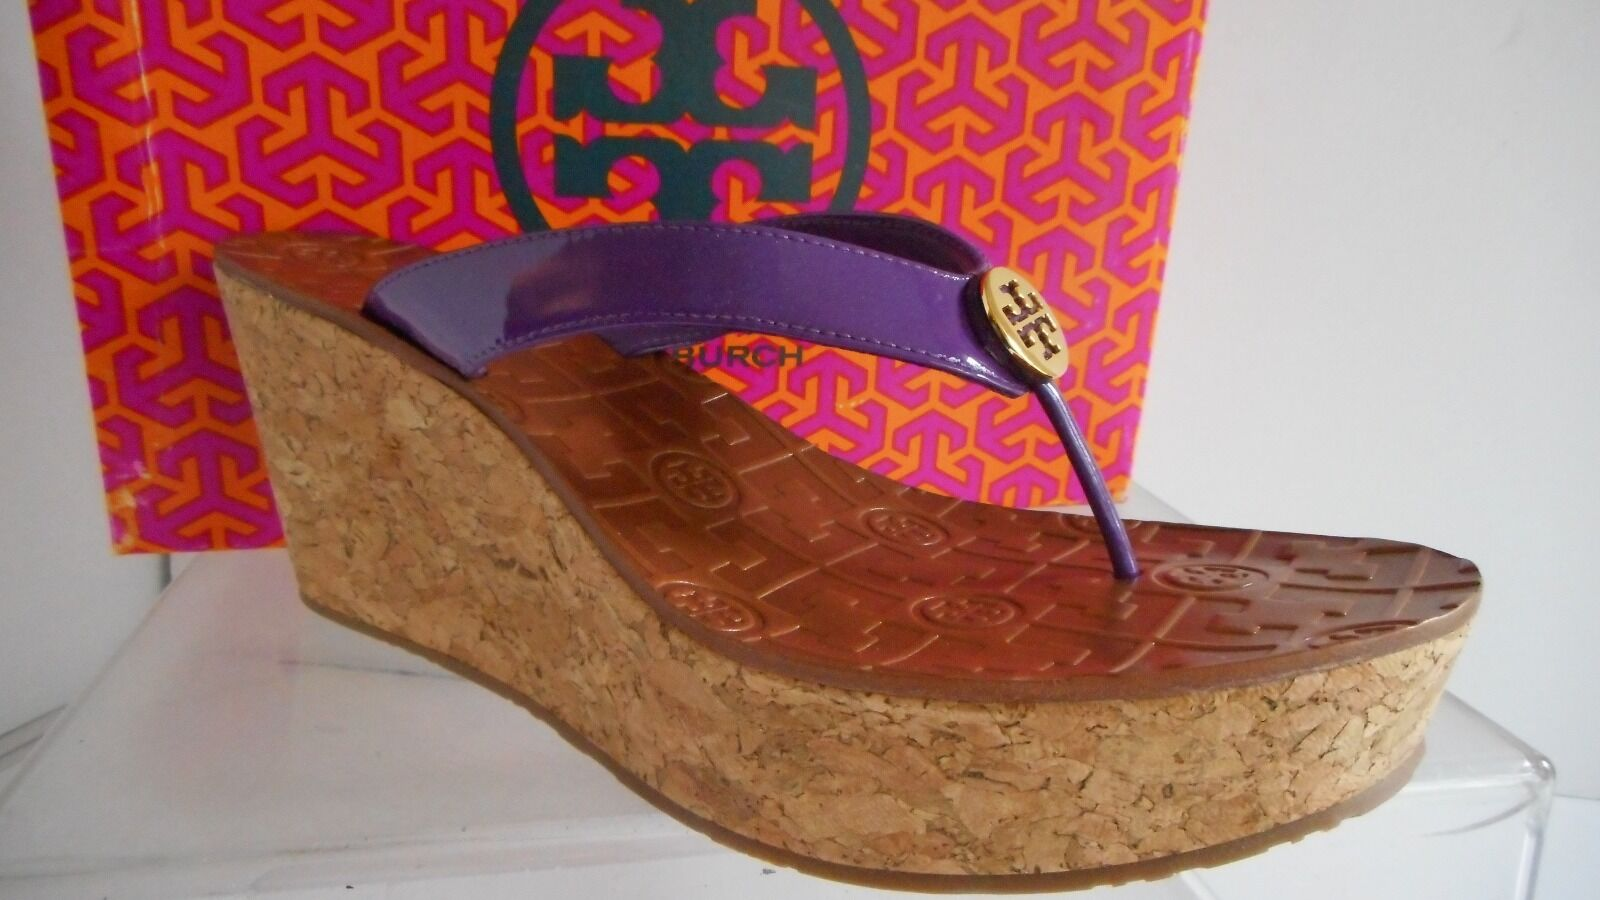 Tory Burch Thora Cork Platf Wedge Thong Sandals Desert Purple Patent Leath 10.5